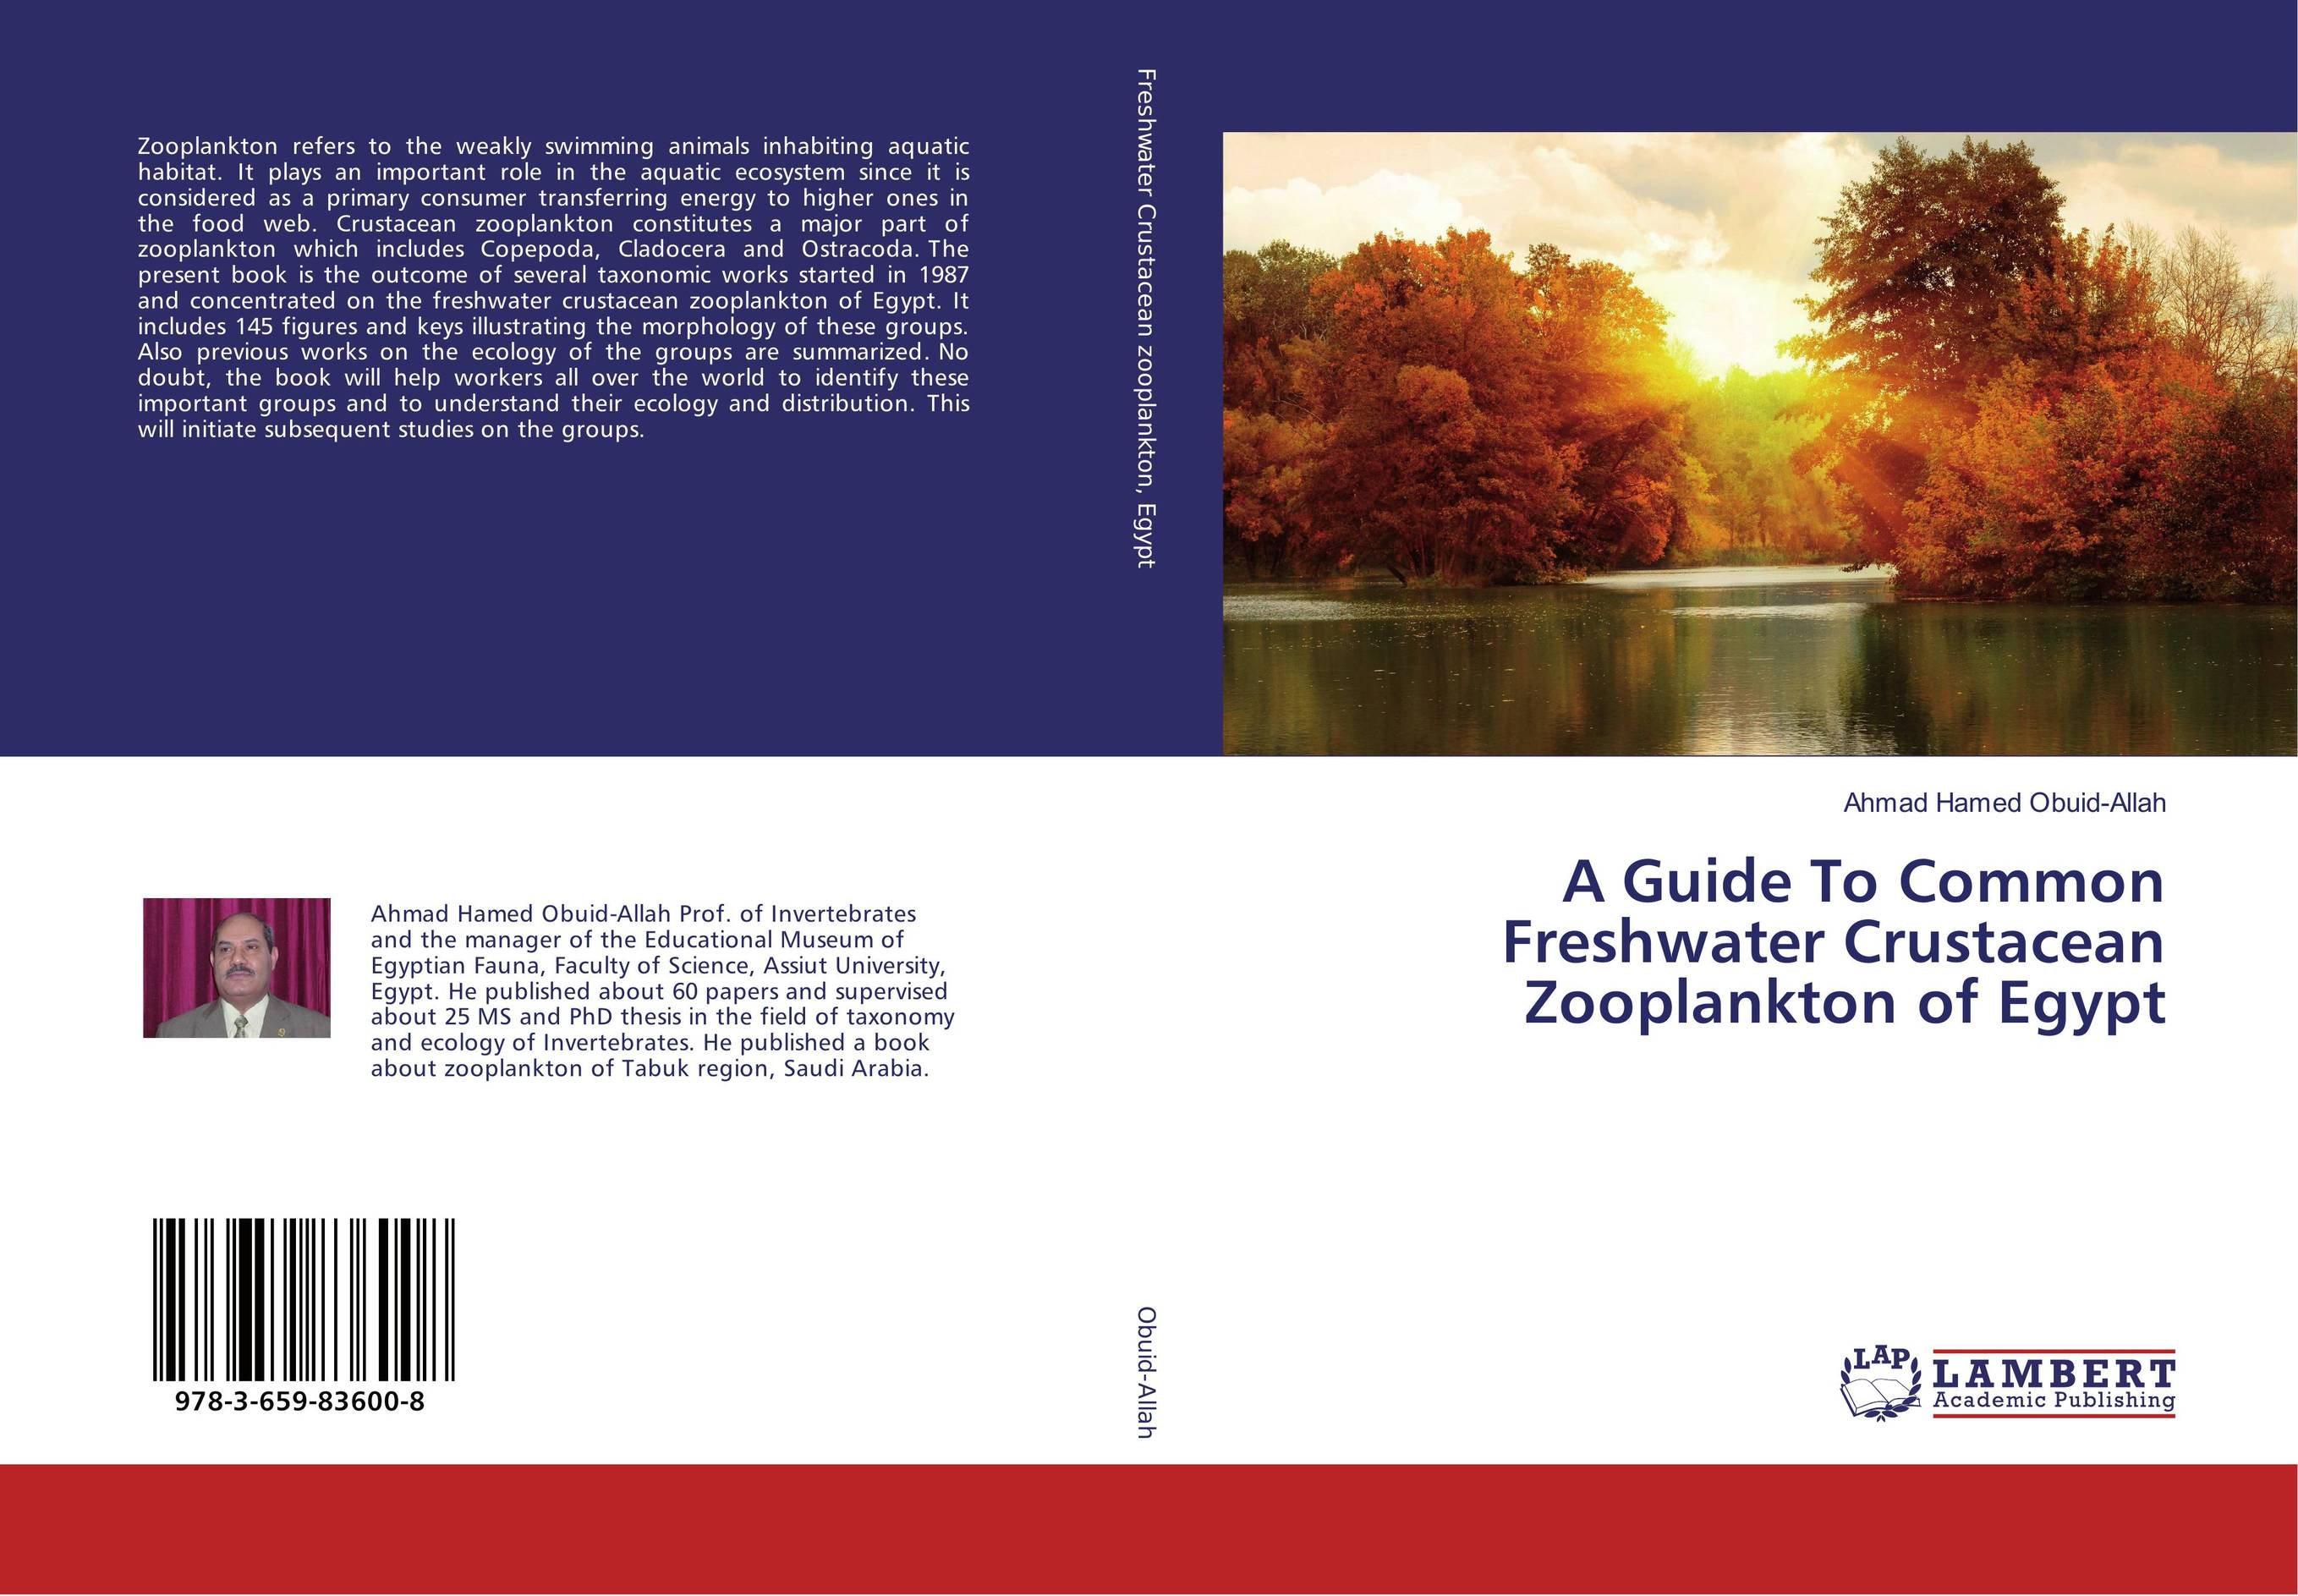 A Guide To Common Freshwater Crustacean Zooplankton of Egypt a guide to common freshwater crustacean zooplankton of egypt